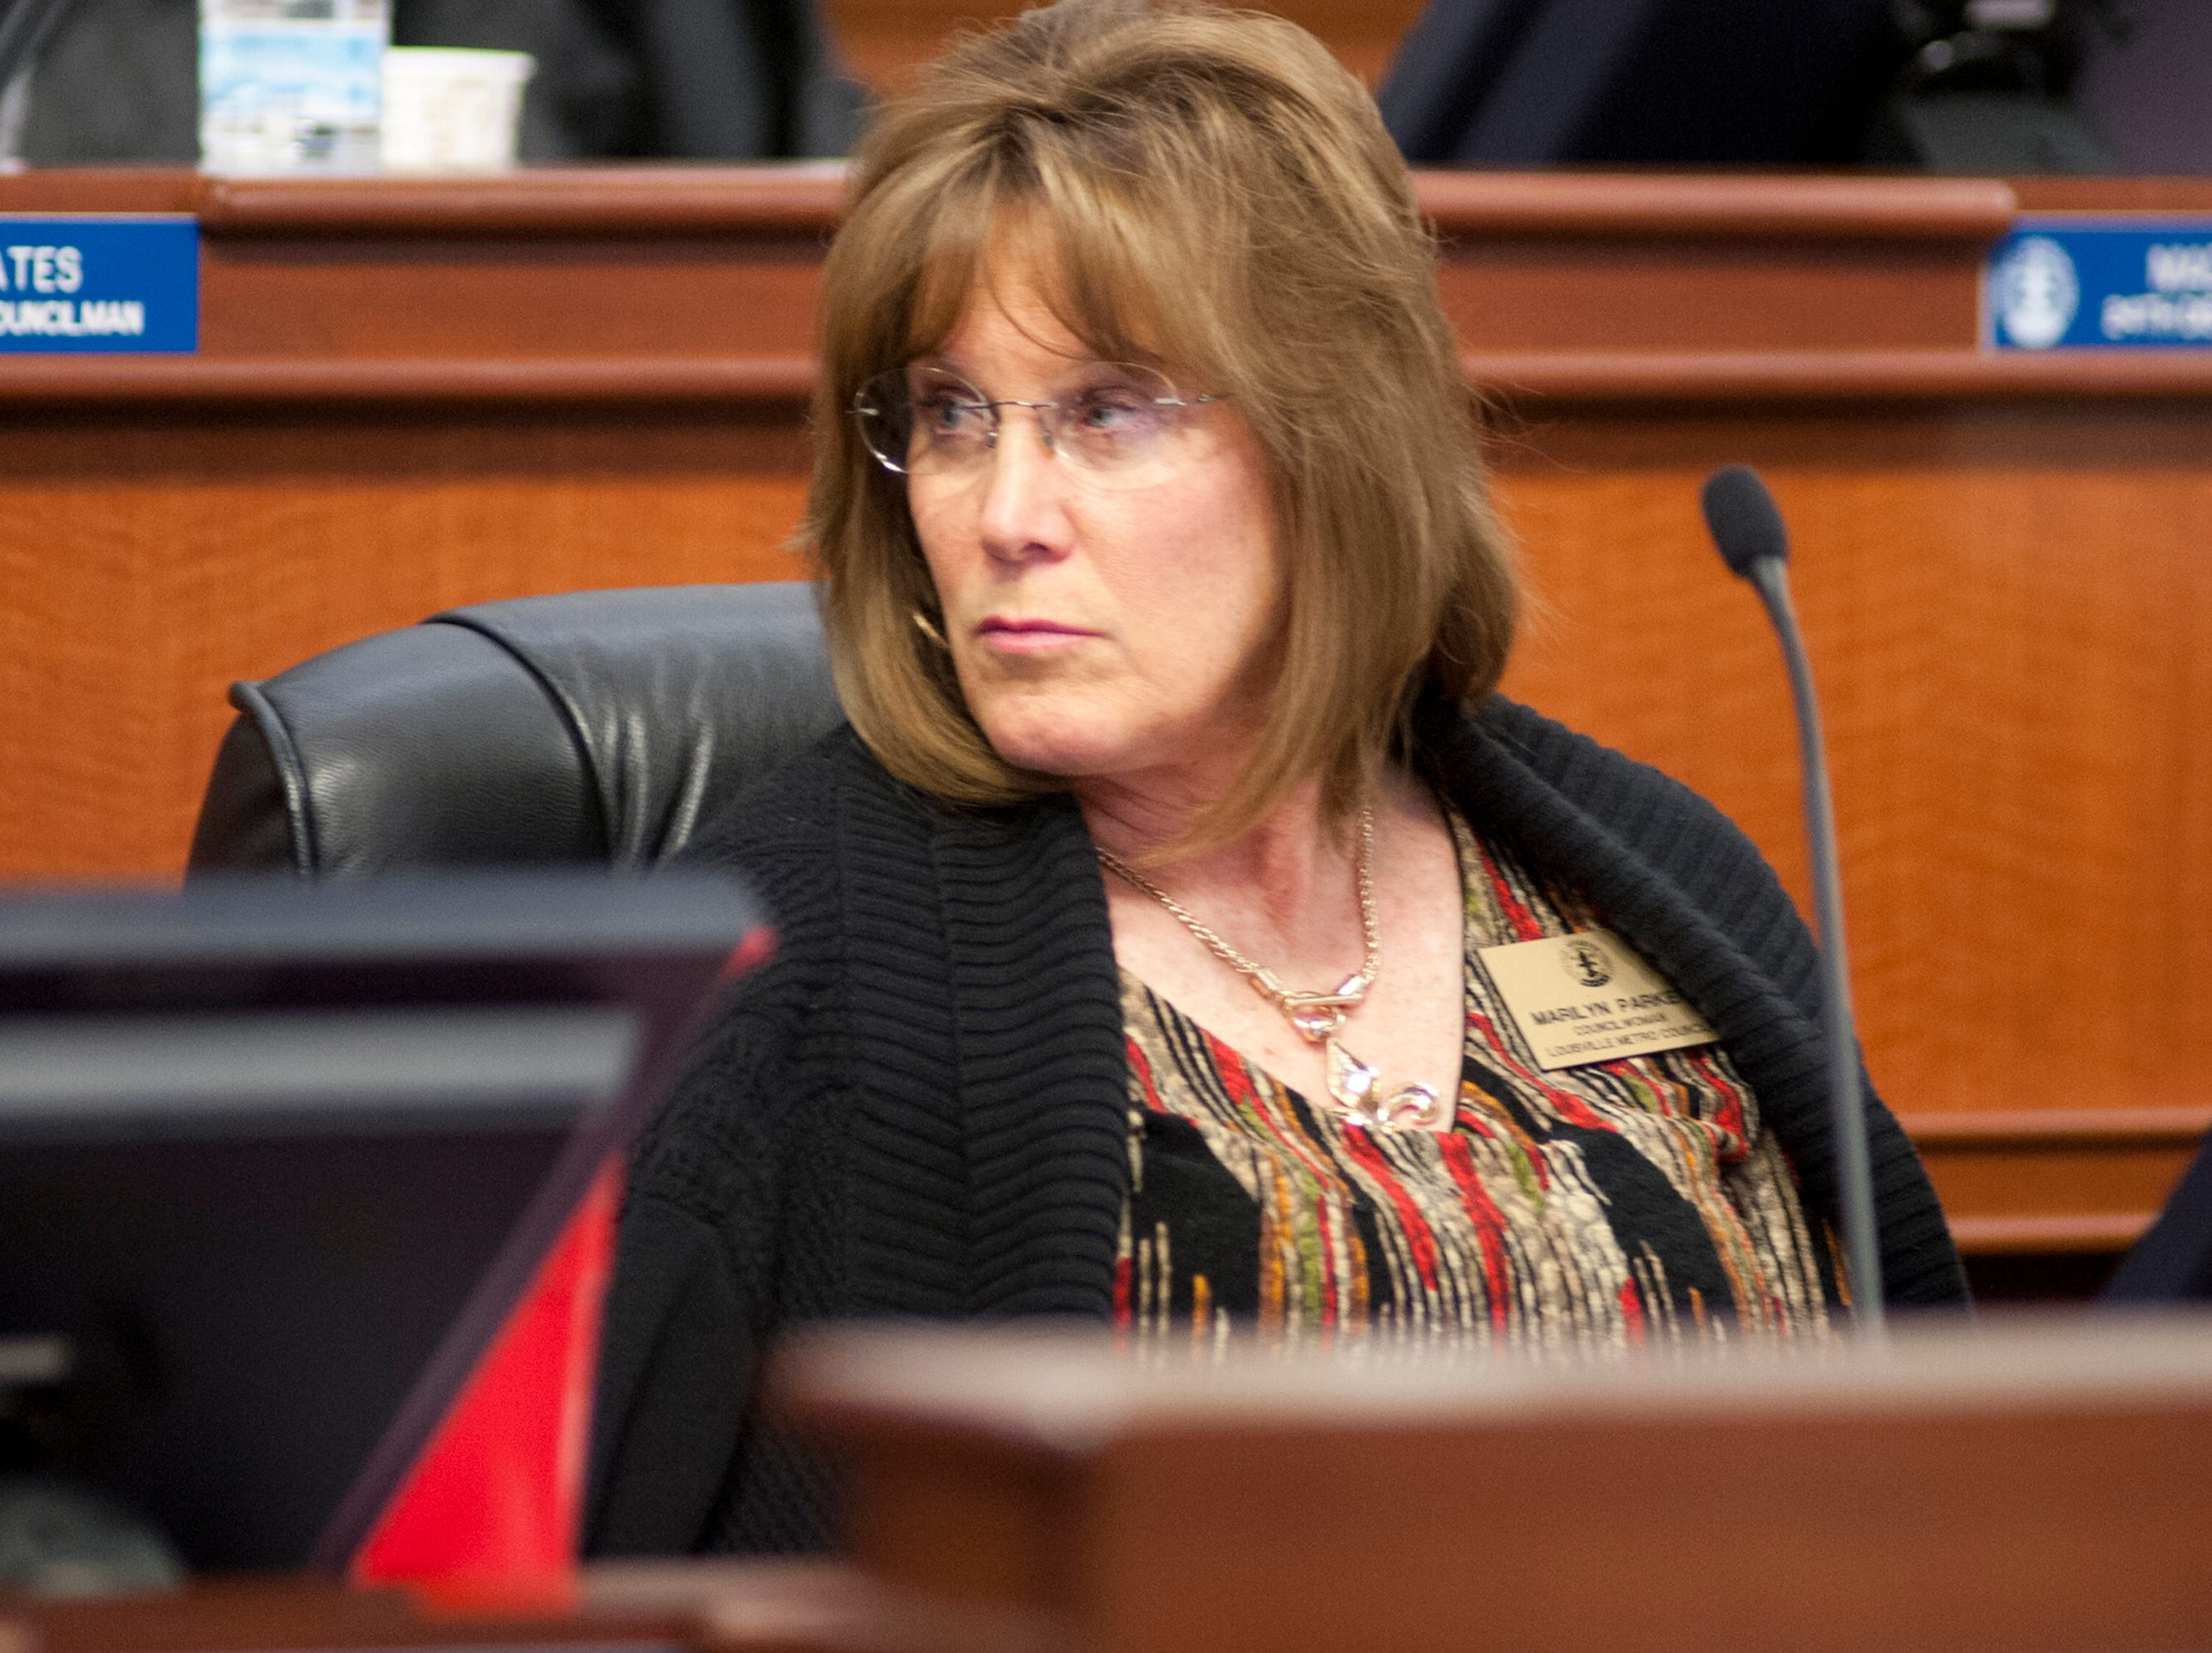 Louisville 18th District Councilwoman Marilyn Parker discusses her proposed ordinance amendment requiring Topgolf to pay a bond for the removal of proposed net poles should the business ever close its Oxmoor location on Nov. 29, 2018.